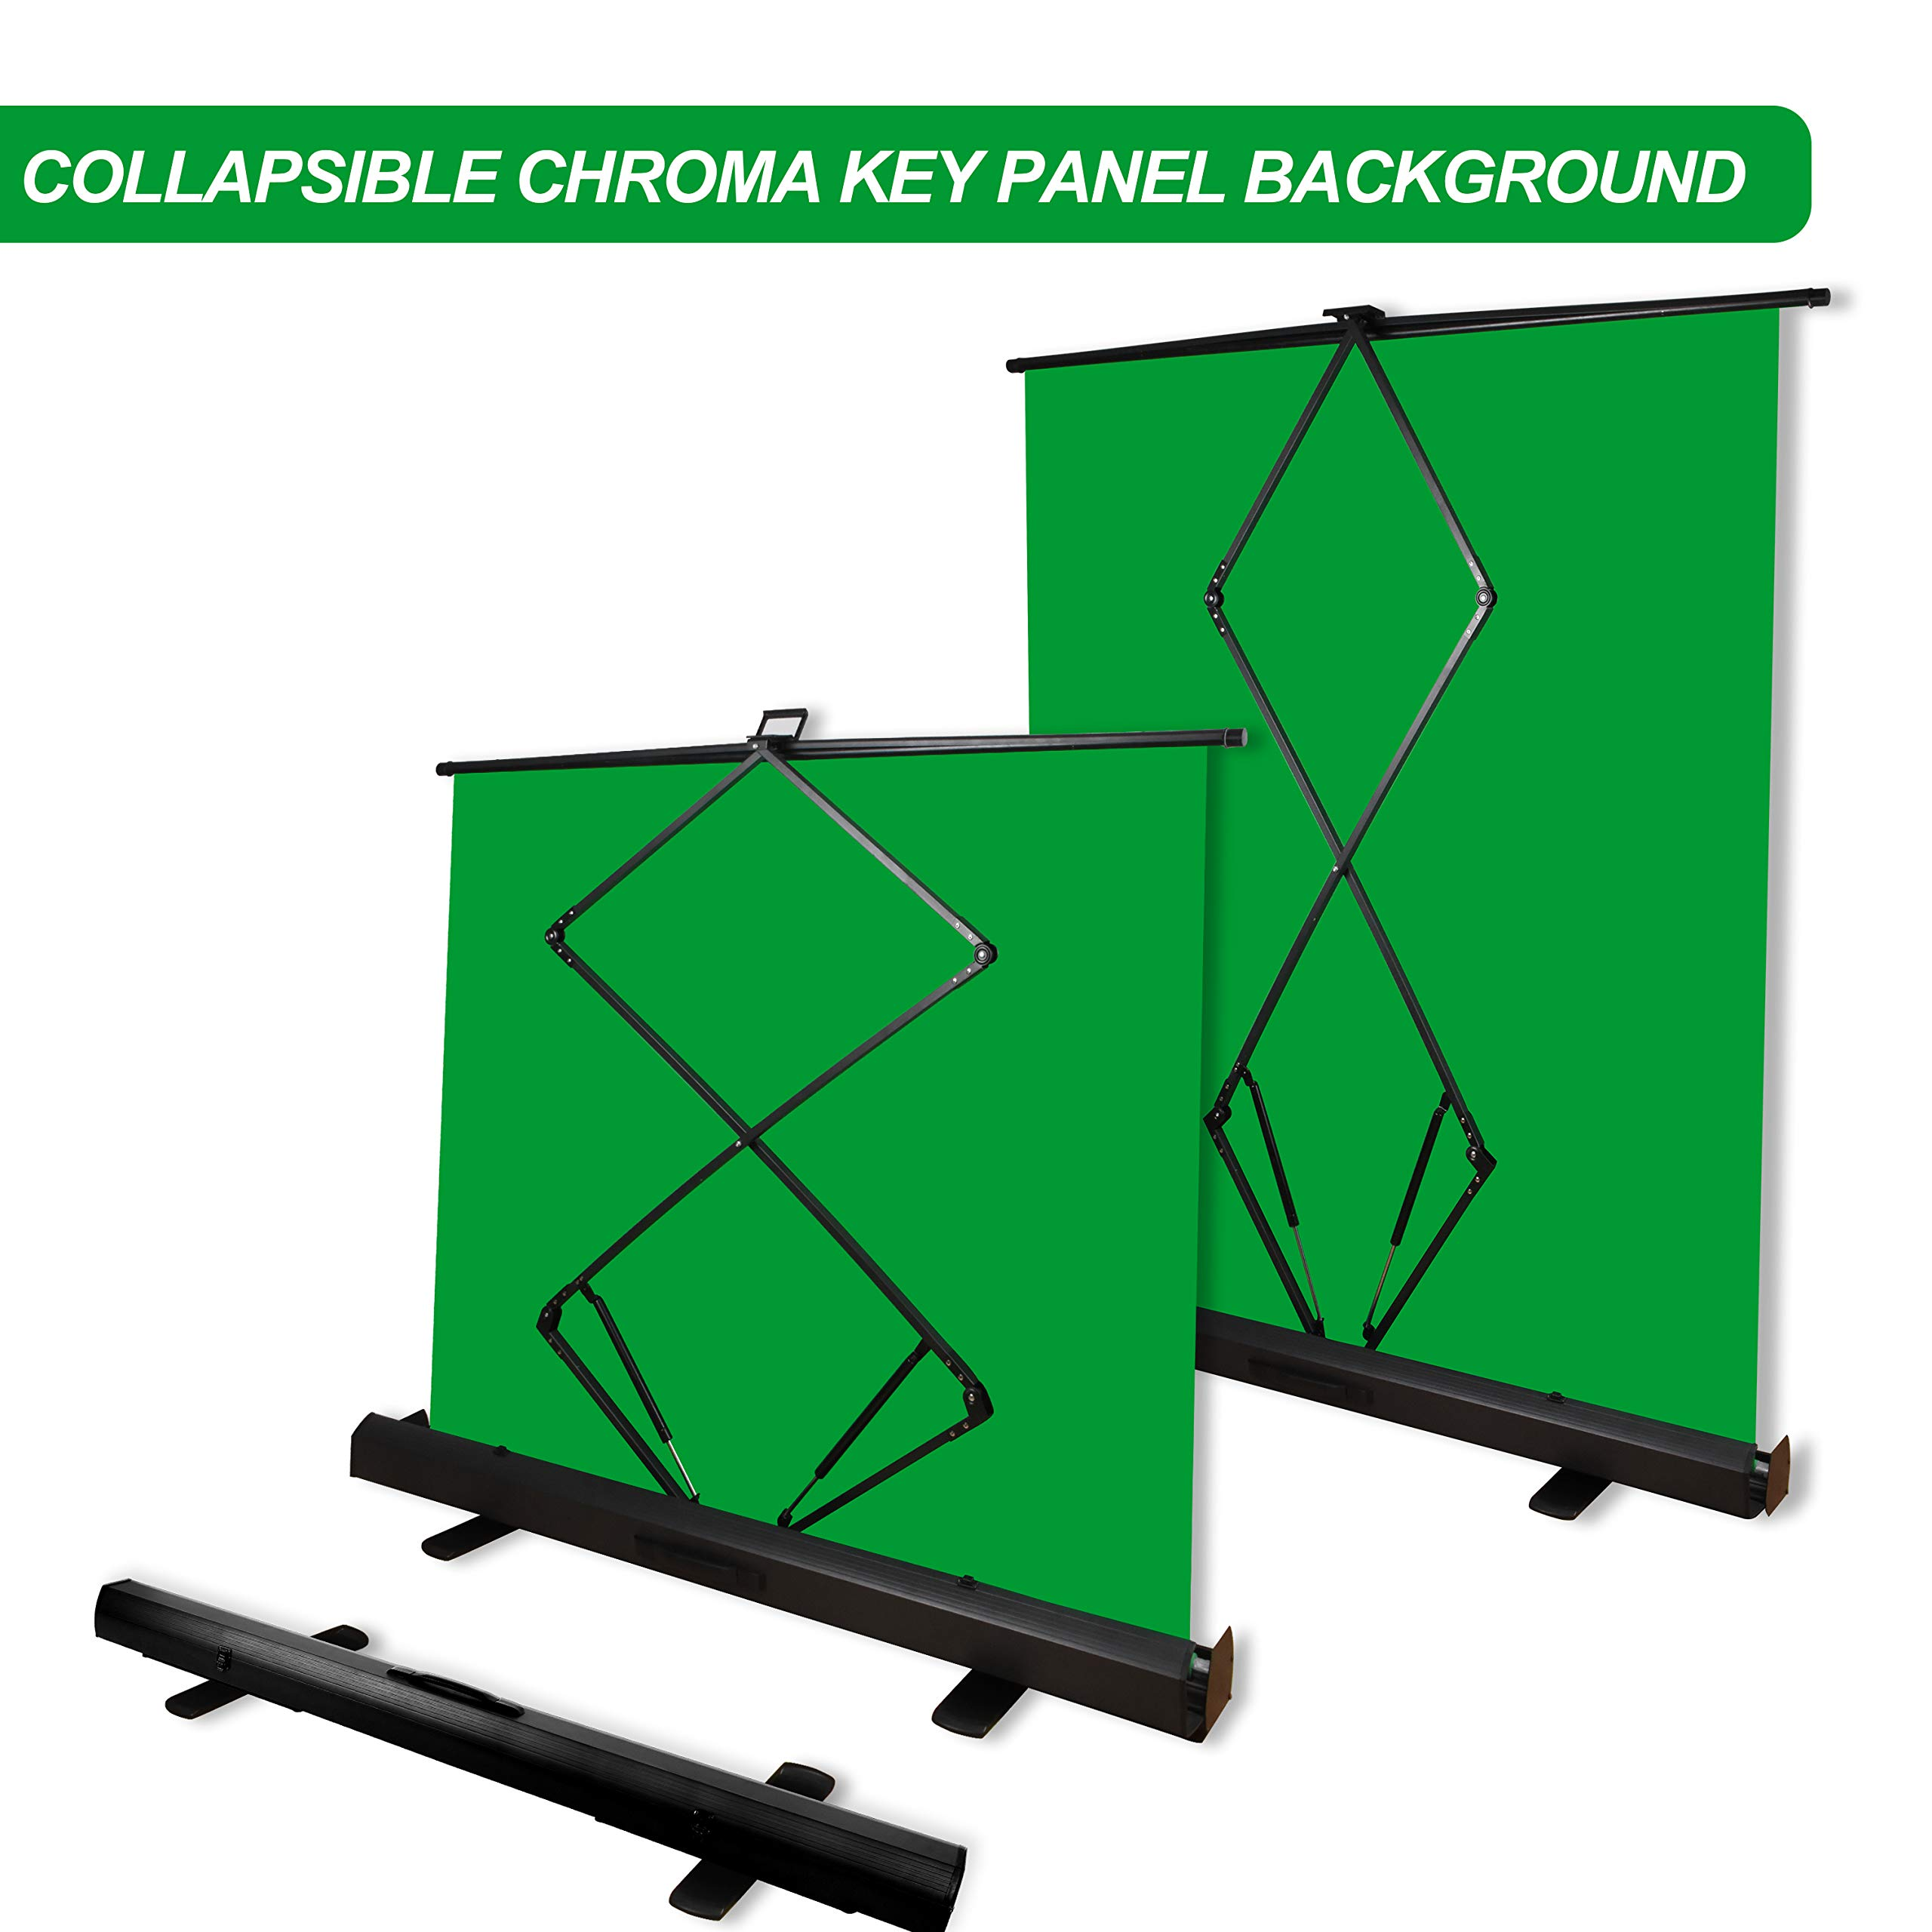 Emart Green Screen, Collapsible Chromakey Panel for Photo Backdrop Video Studio,Portable Pull Up Wrinkle-Resistant Greenscreen Background, Auto-Locking Air Cushion Frame, Solid Safety Aluminium Base by EMART (Image #4)